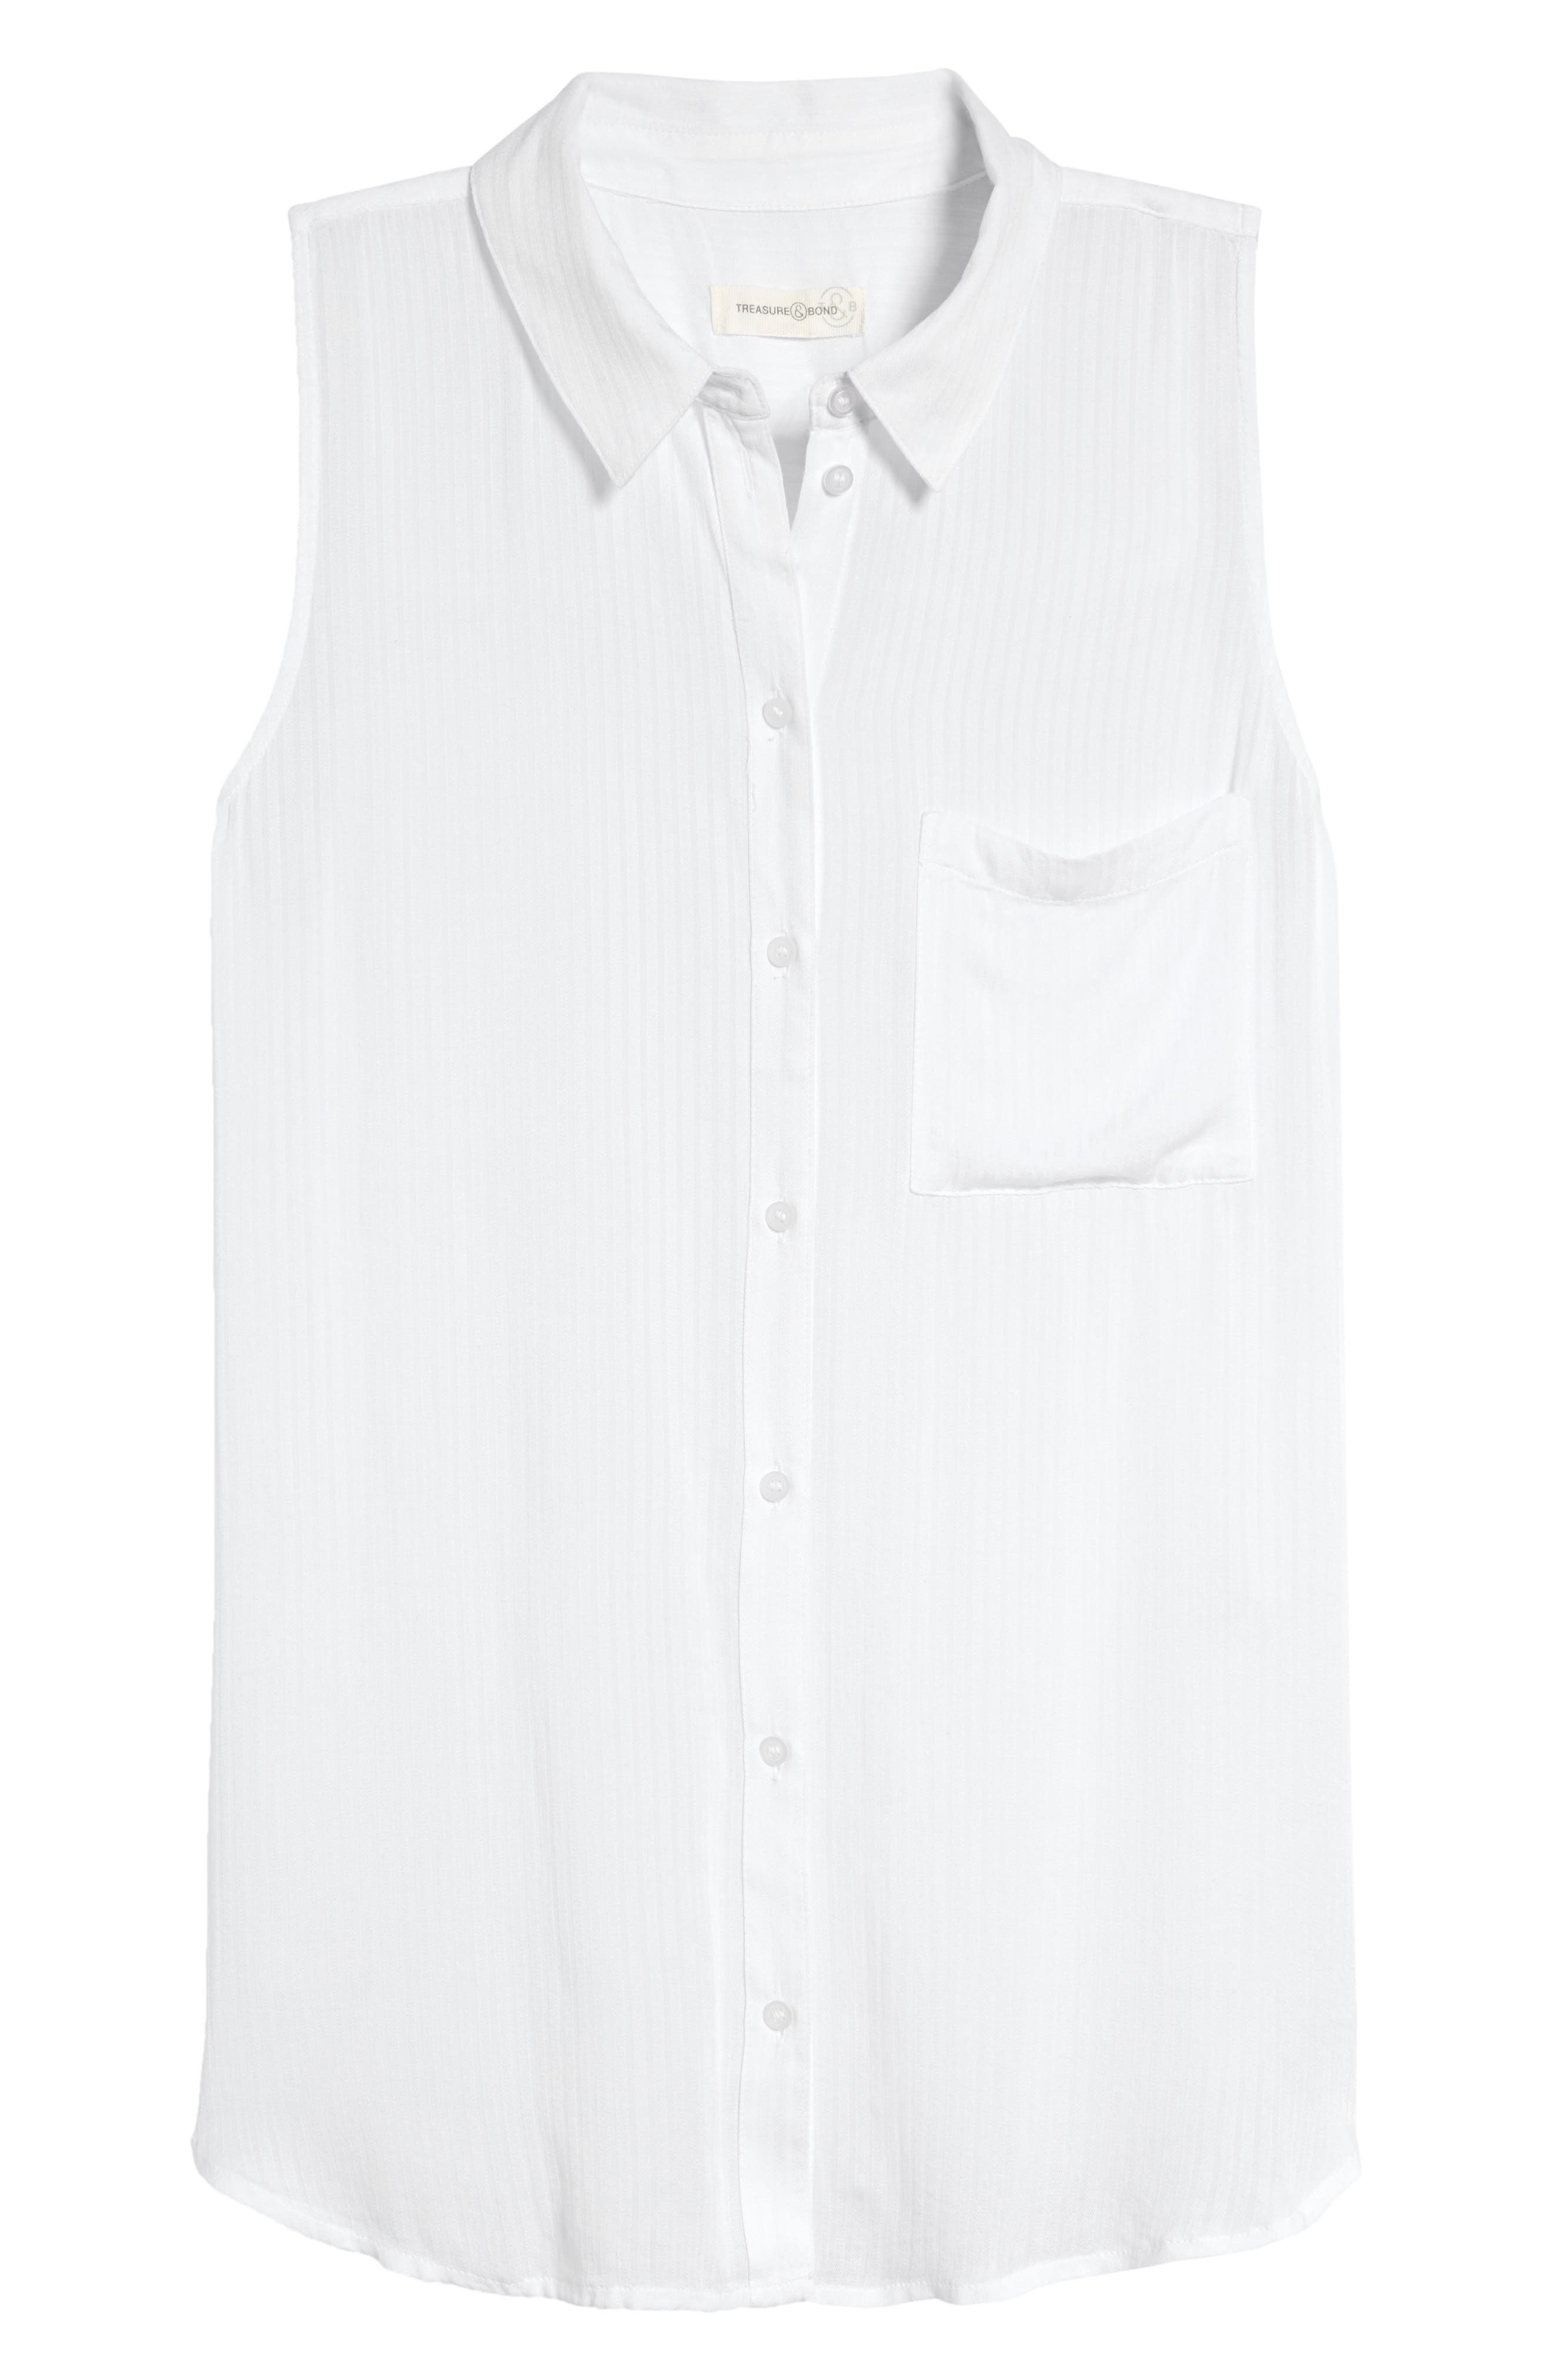 A slightly oversized fit adds relaxed appeal to a woven button-front shirt that\\\'s ready to serve as a casual style staple. When you buy Treasure & Bond, Nordstrom will donate 2.5% of net sales to organizations that work to empower youth. Style Name: Treasure & Bond Button-Up Boyfriend Tank. Style Number: 5994040. Available in stores.